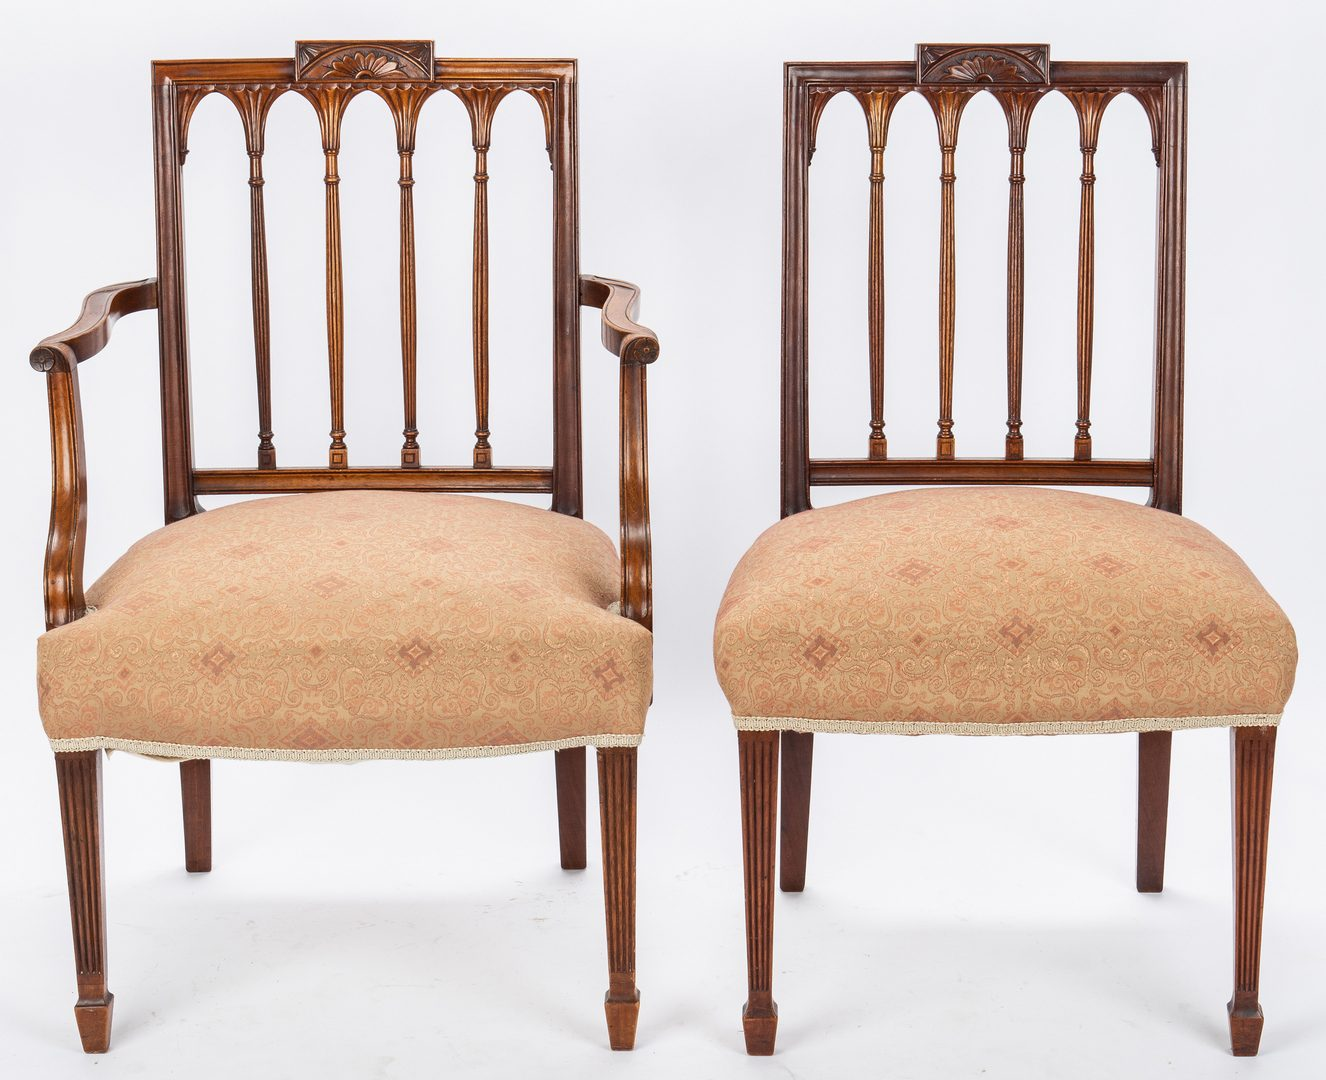 Lot 118: 2 American Federal Square-Back Chairs